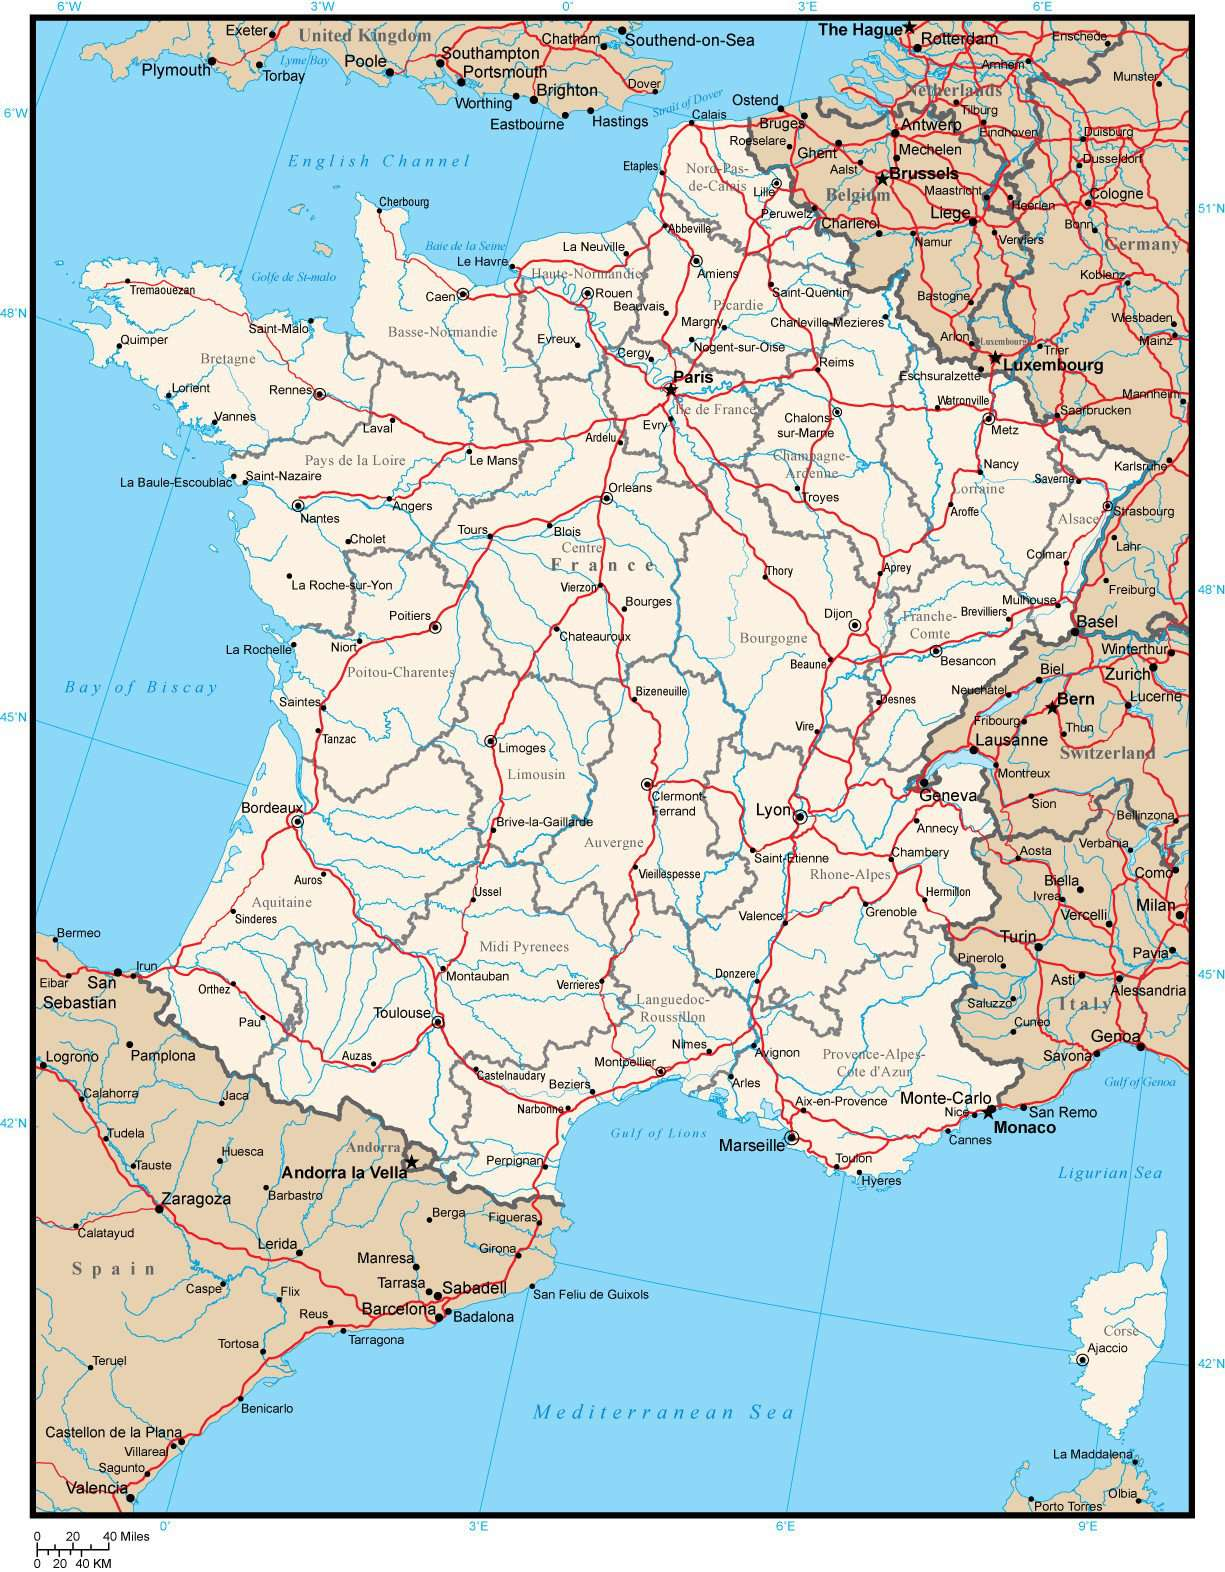 Map Of Provinces In France.France Map With Provinces Cities Rivers And Roads